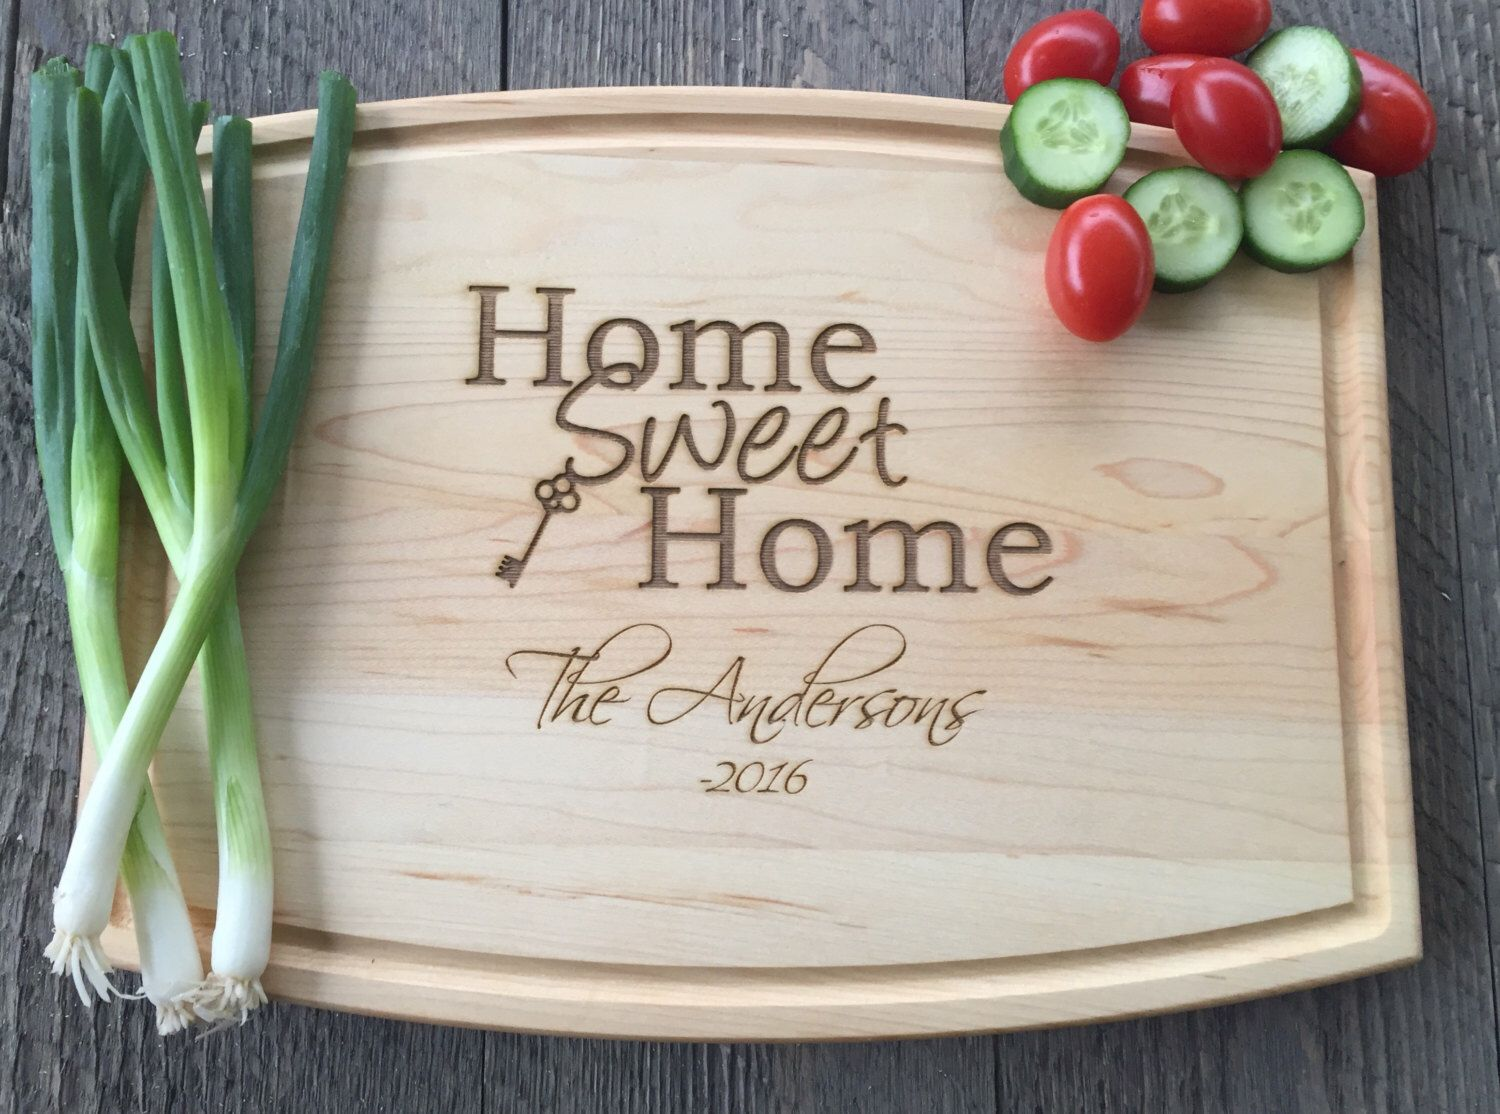 Cutting board realtor closing gift home sweet home